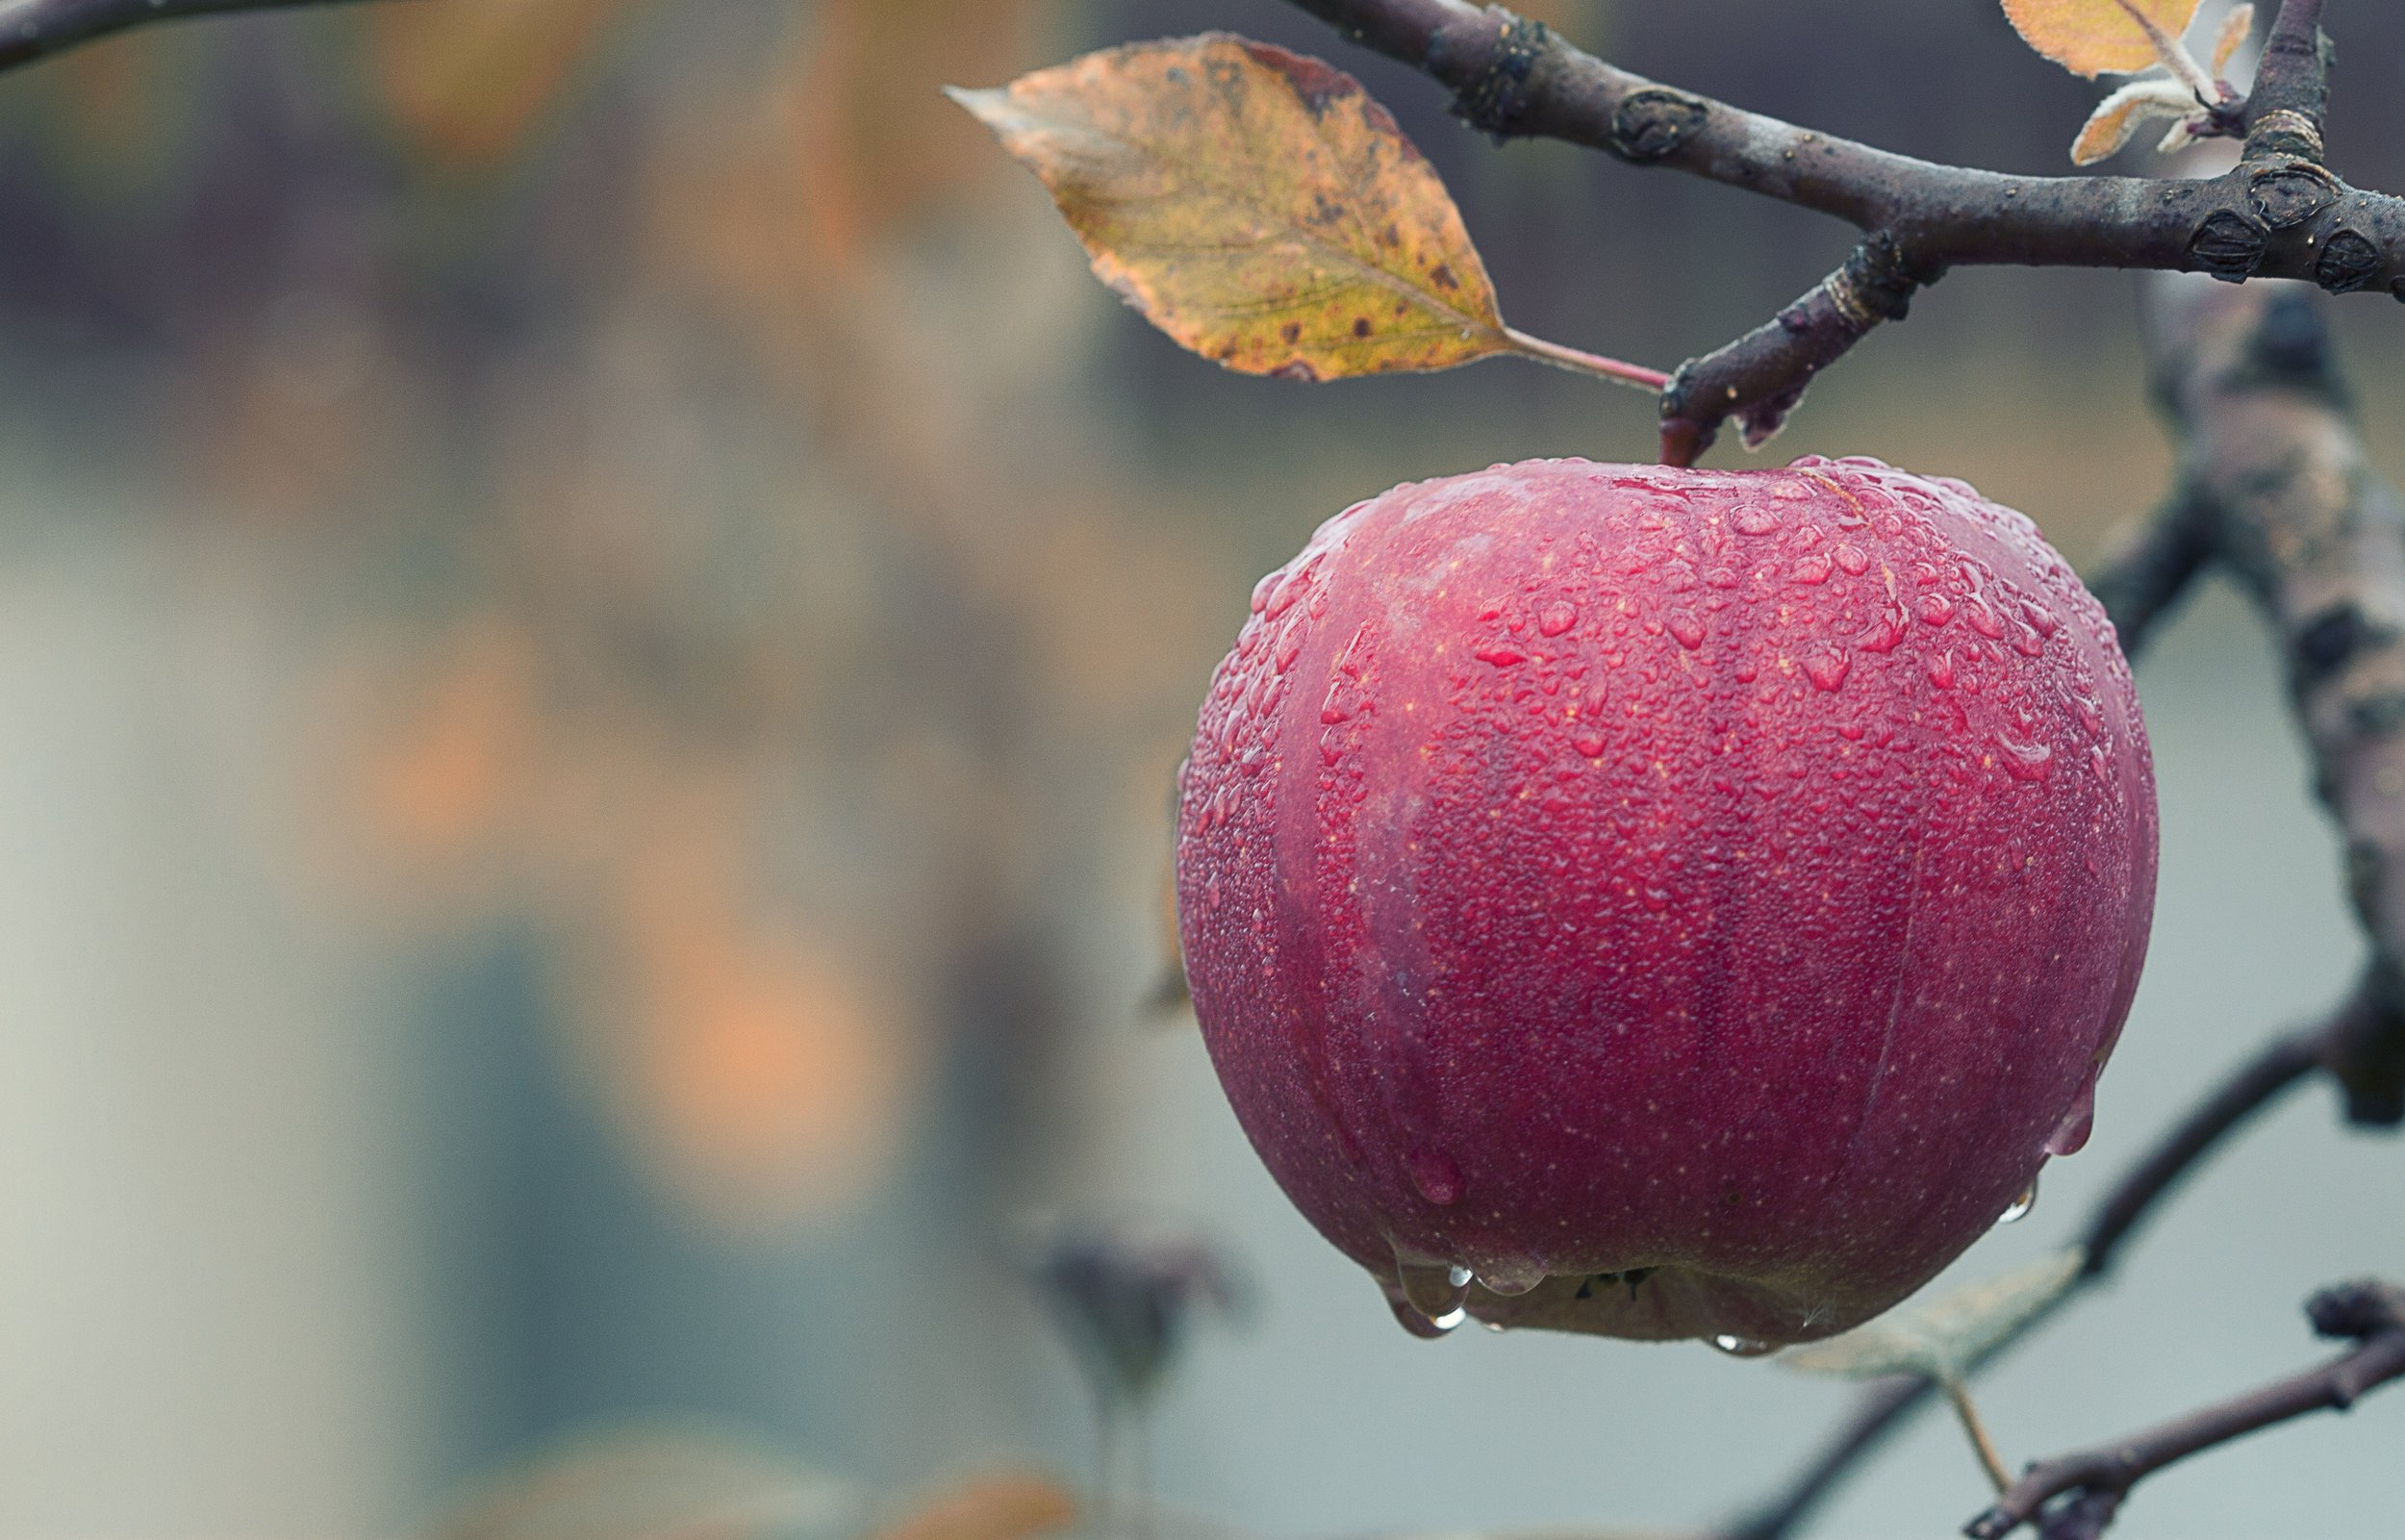 agriculture-apple-blur-257840.jpg